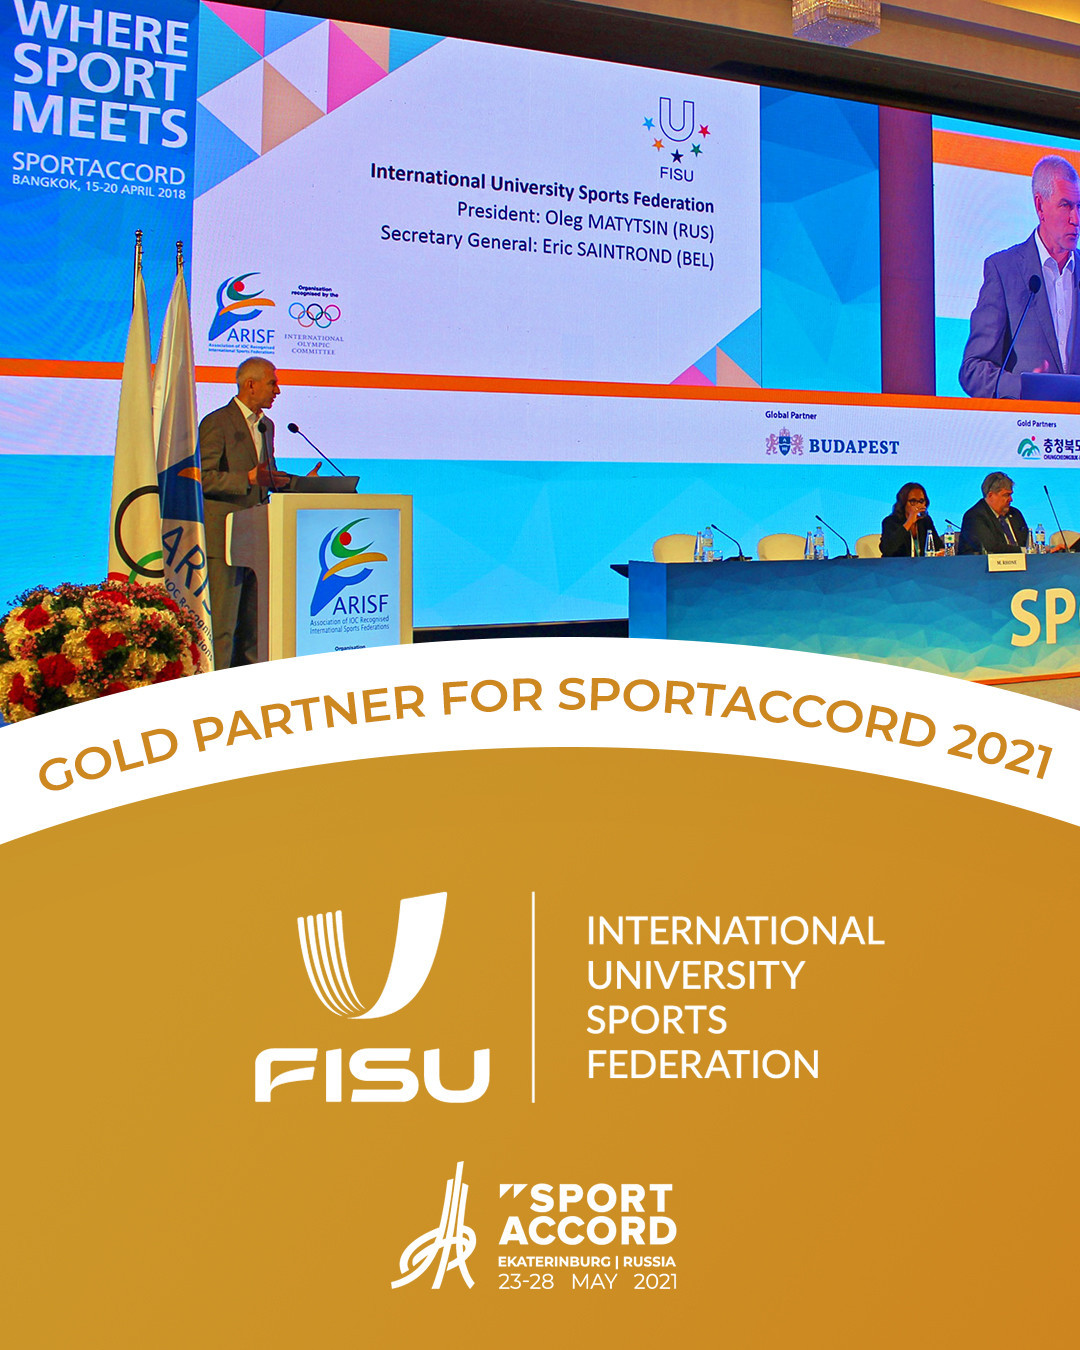 FISU has signed up as a gold partner of next year's event ©SportAccord